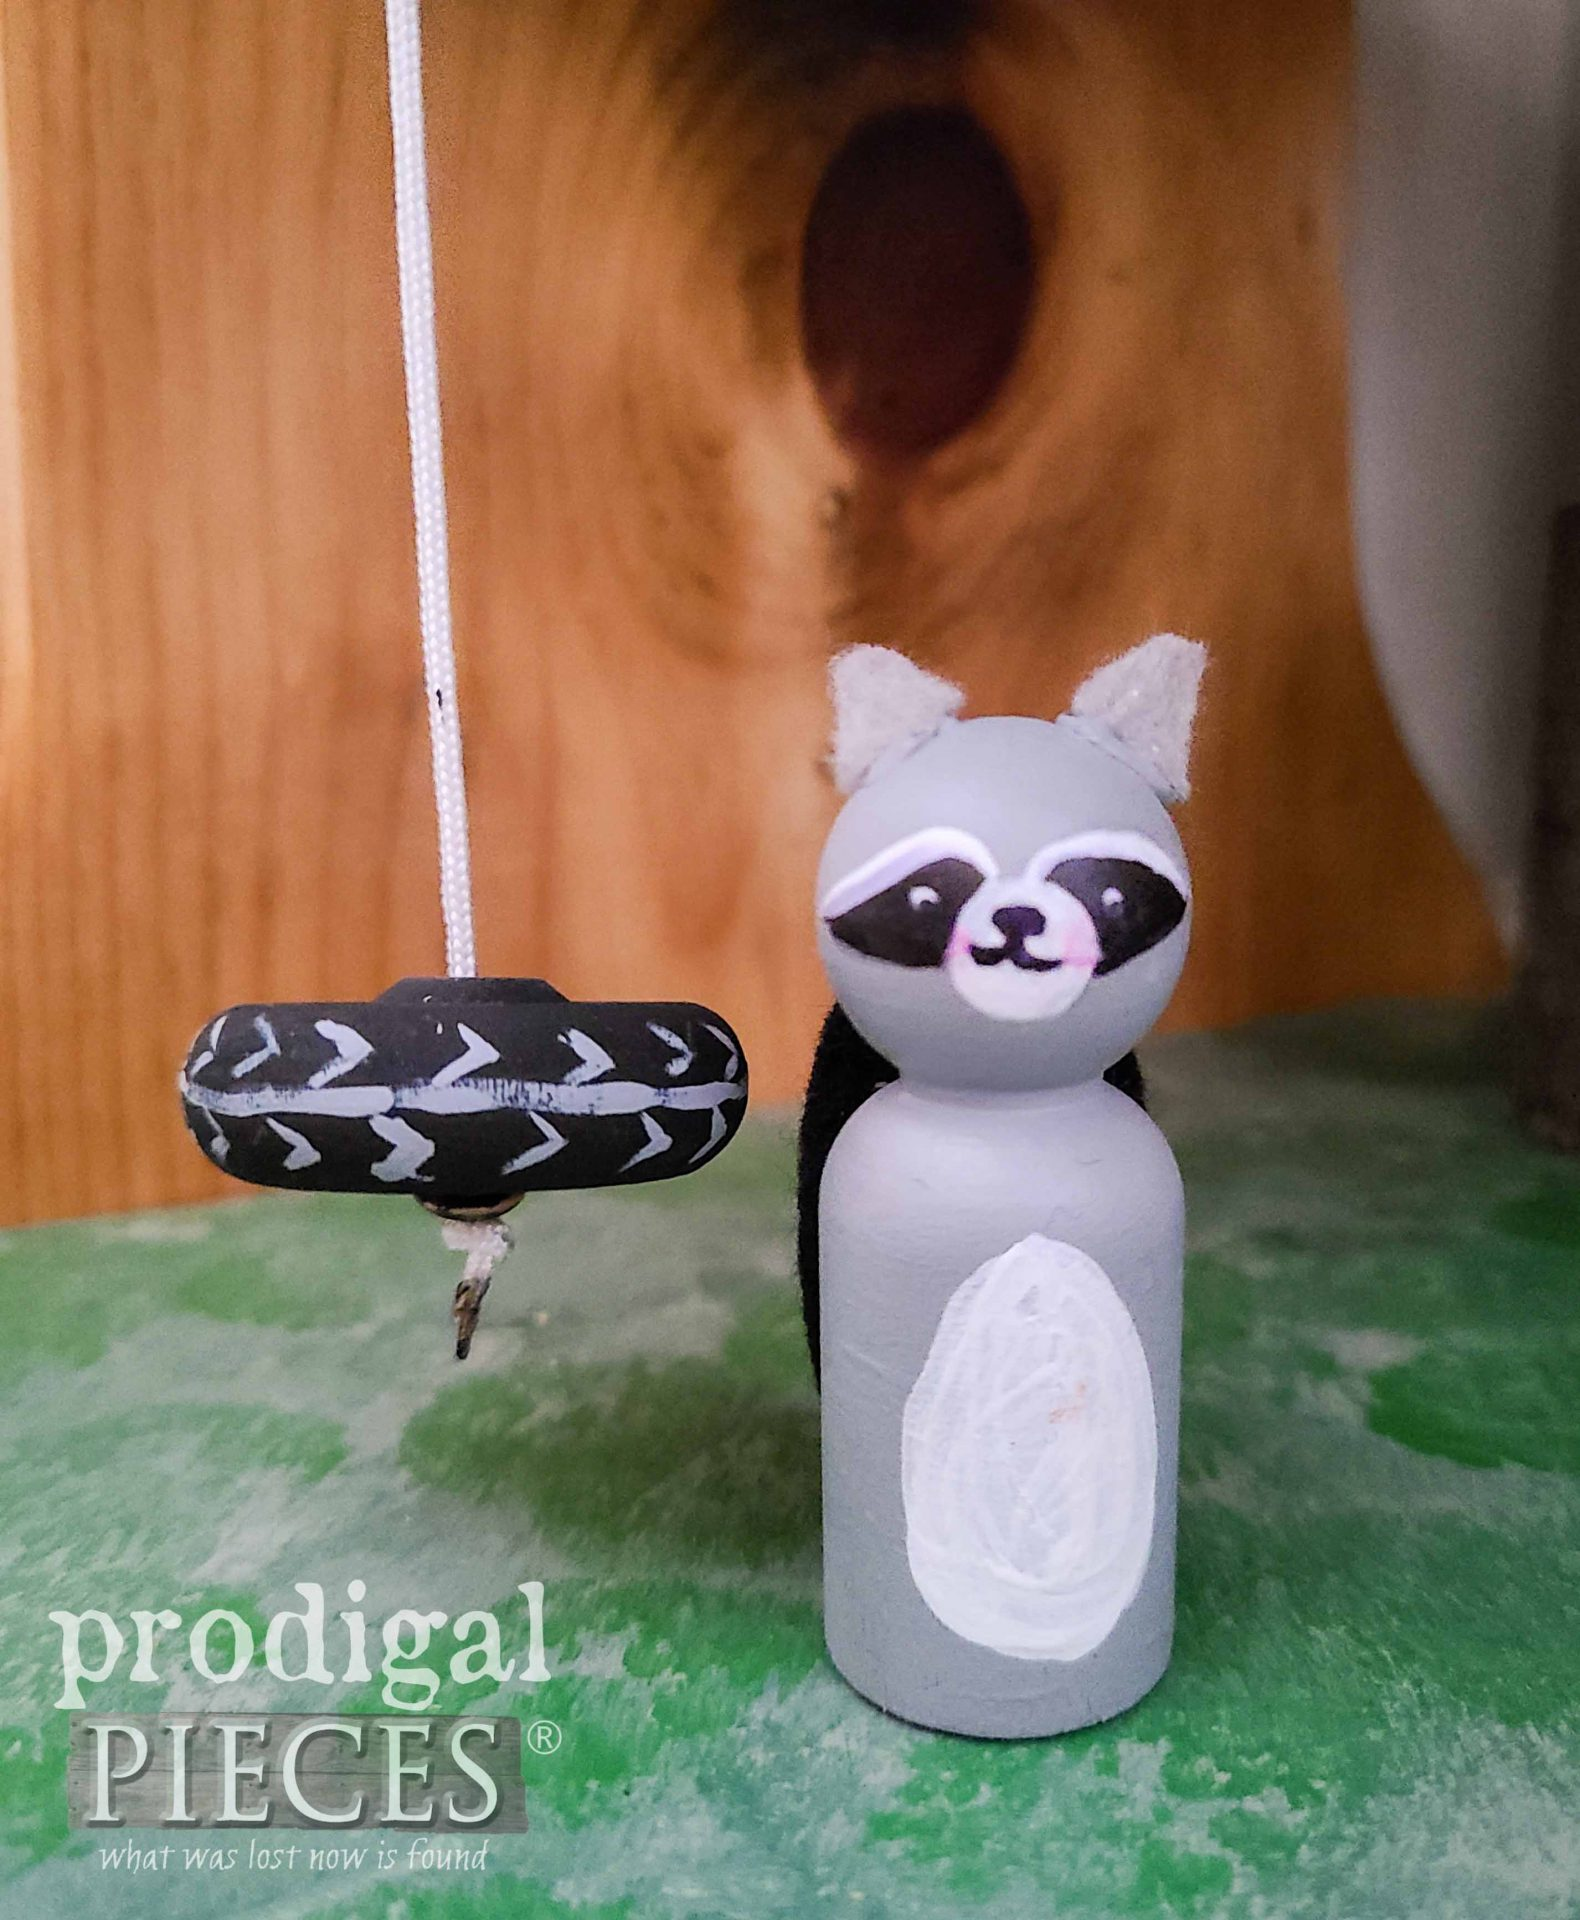 Treehouse Tire Swing with Woodland Raccoon Peg doll by Larissa of Prodigal Pieces | prodigalpieces.com #prodigalpieces #toys #doll #kids #handmade